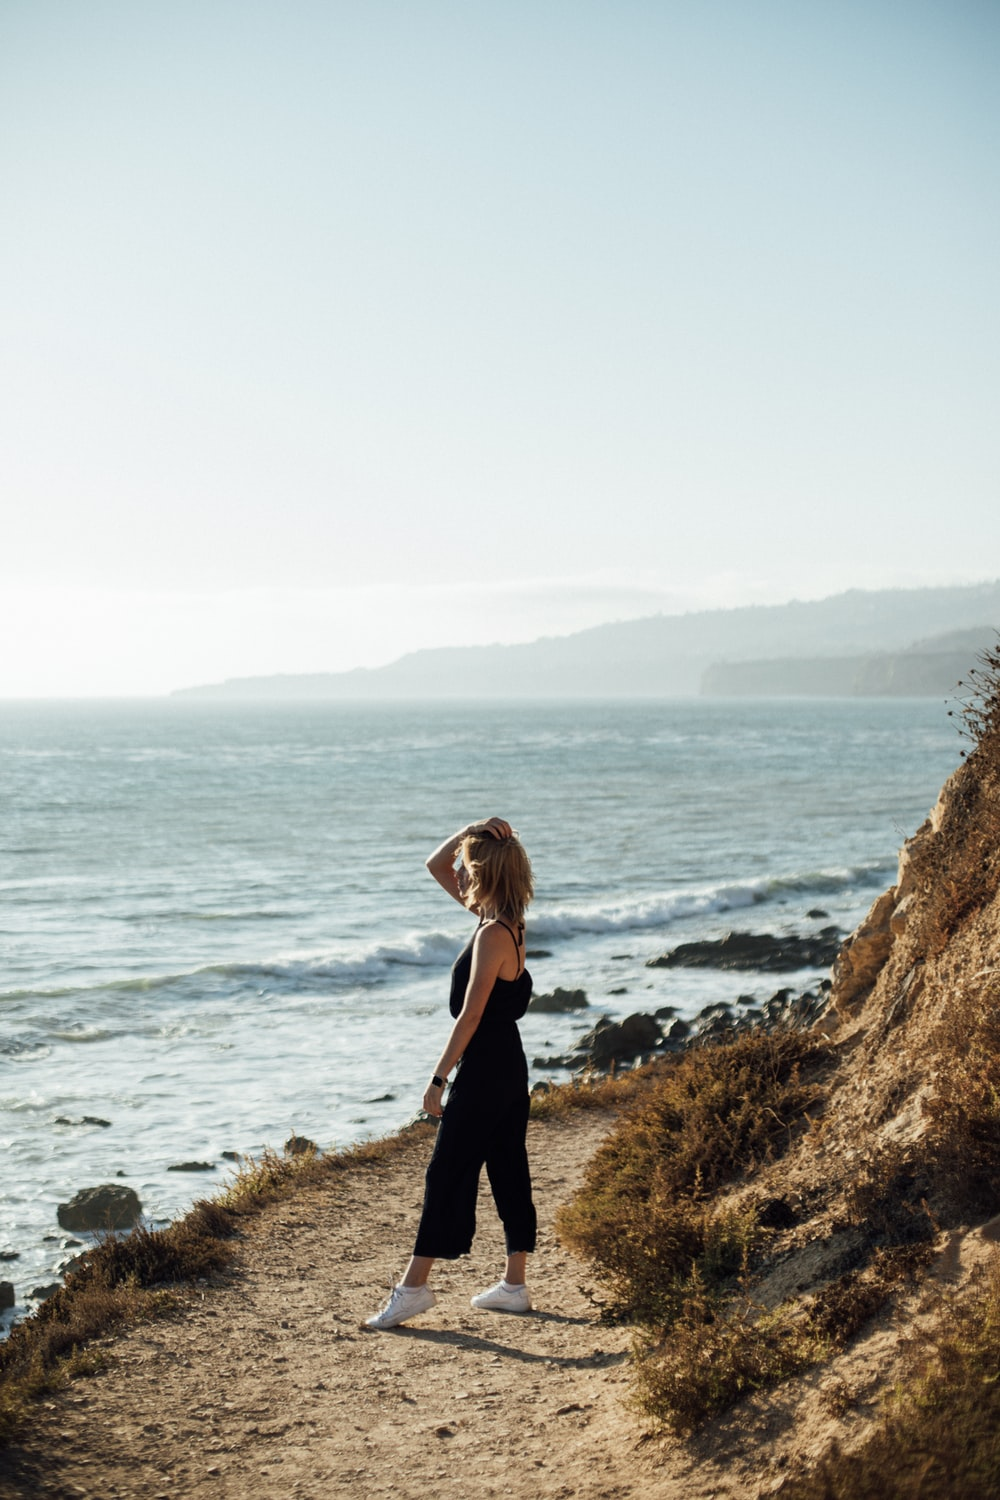 woman in black long sleeve dress standing on brown rock near body of water during daytime